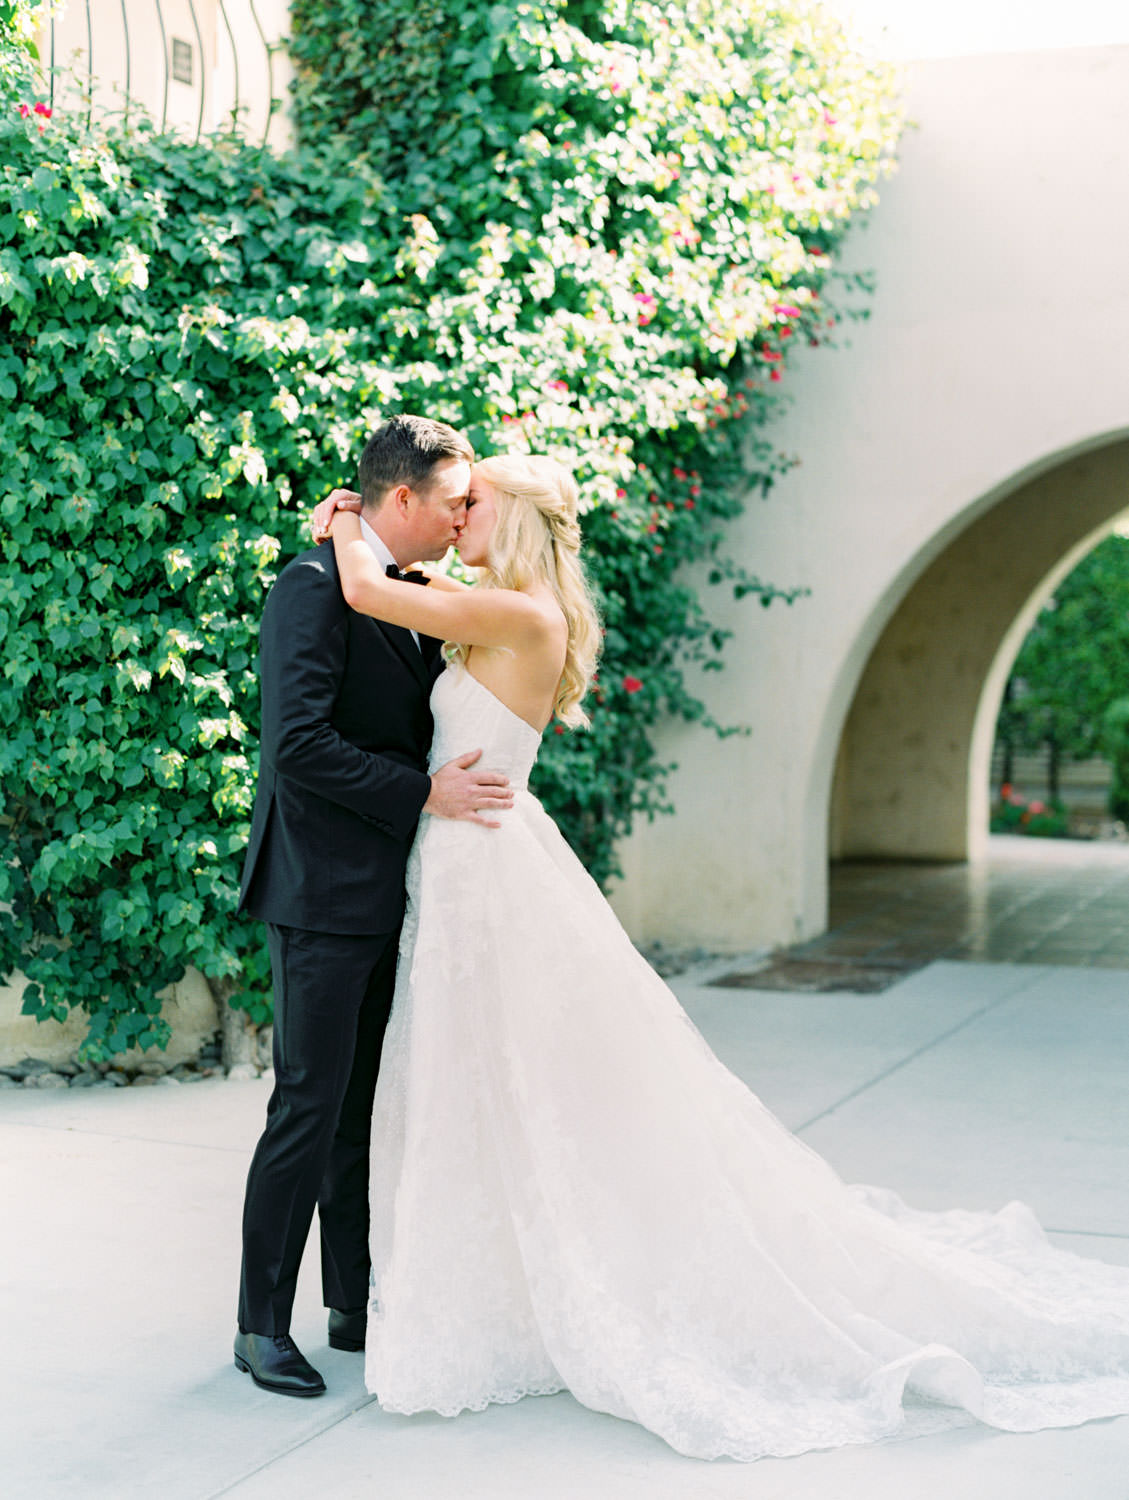 Bride and groom first look kiss. Bride in lace Watters sweetheart gown. Groom in classic black tuxedo with single white rose for boutonniere. Miramonte Resort wedding. Film photography by Cavin Elizabeth.